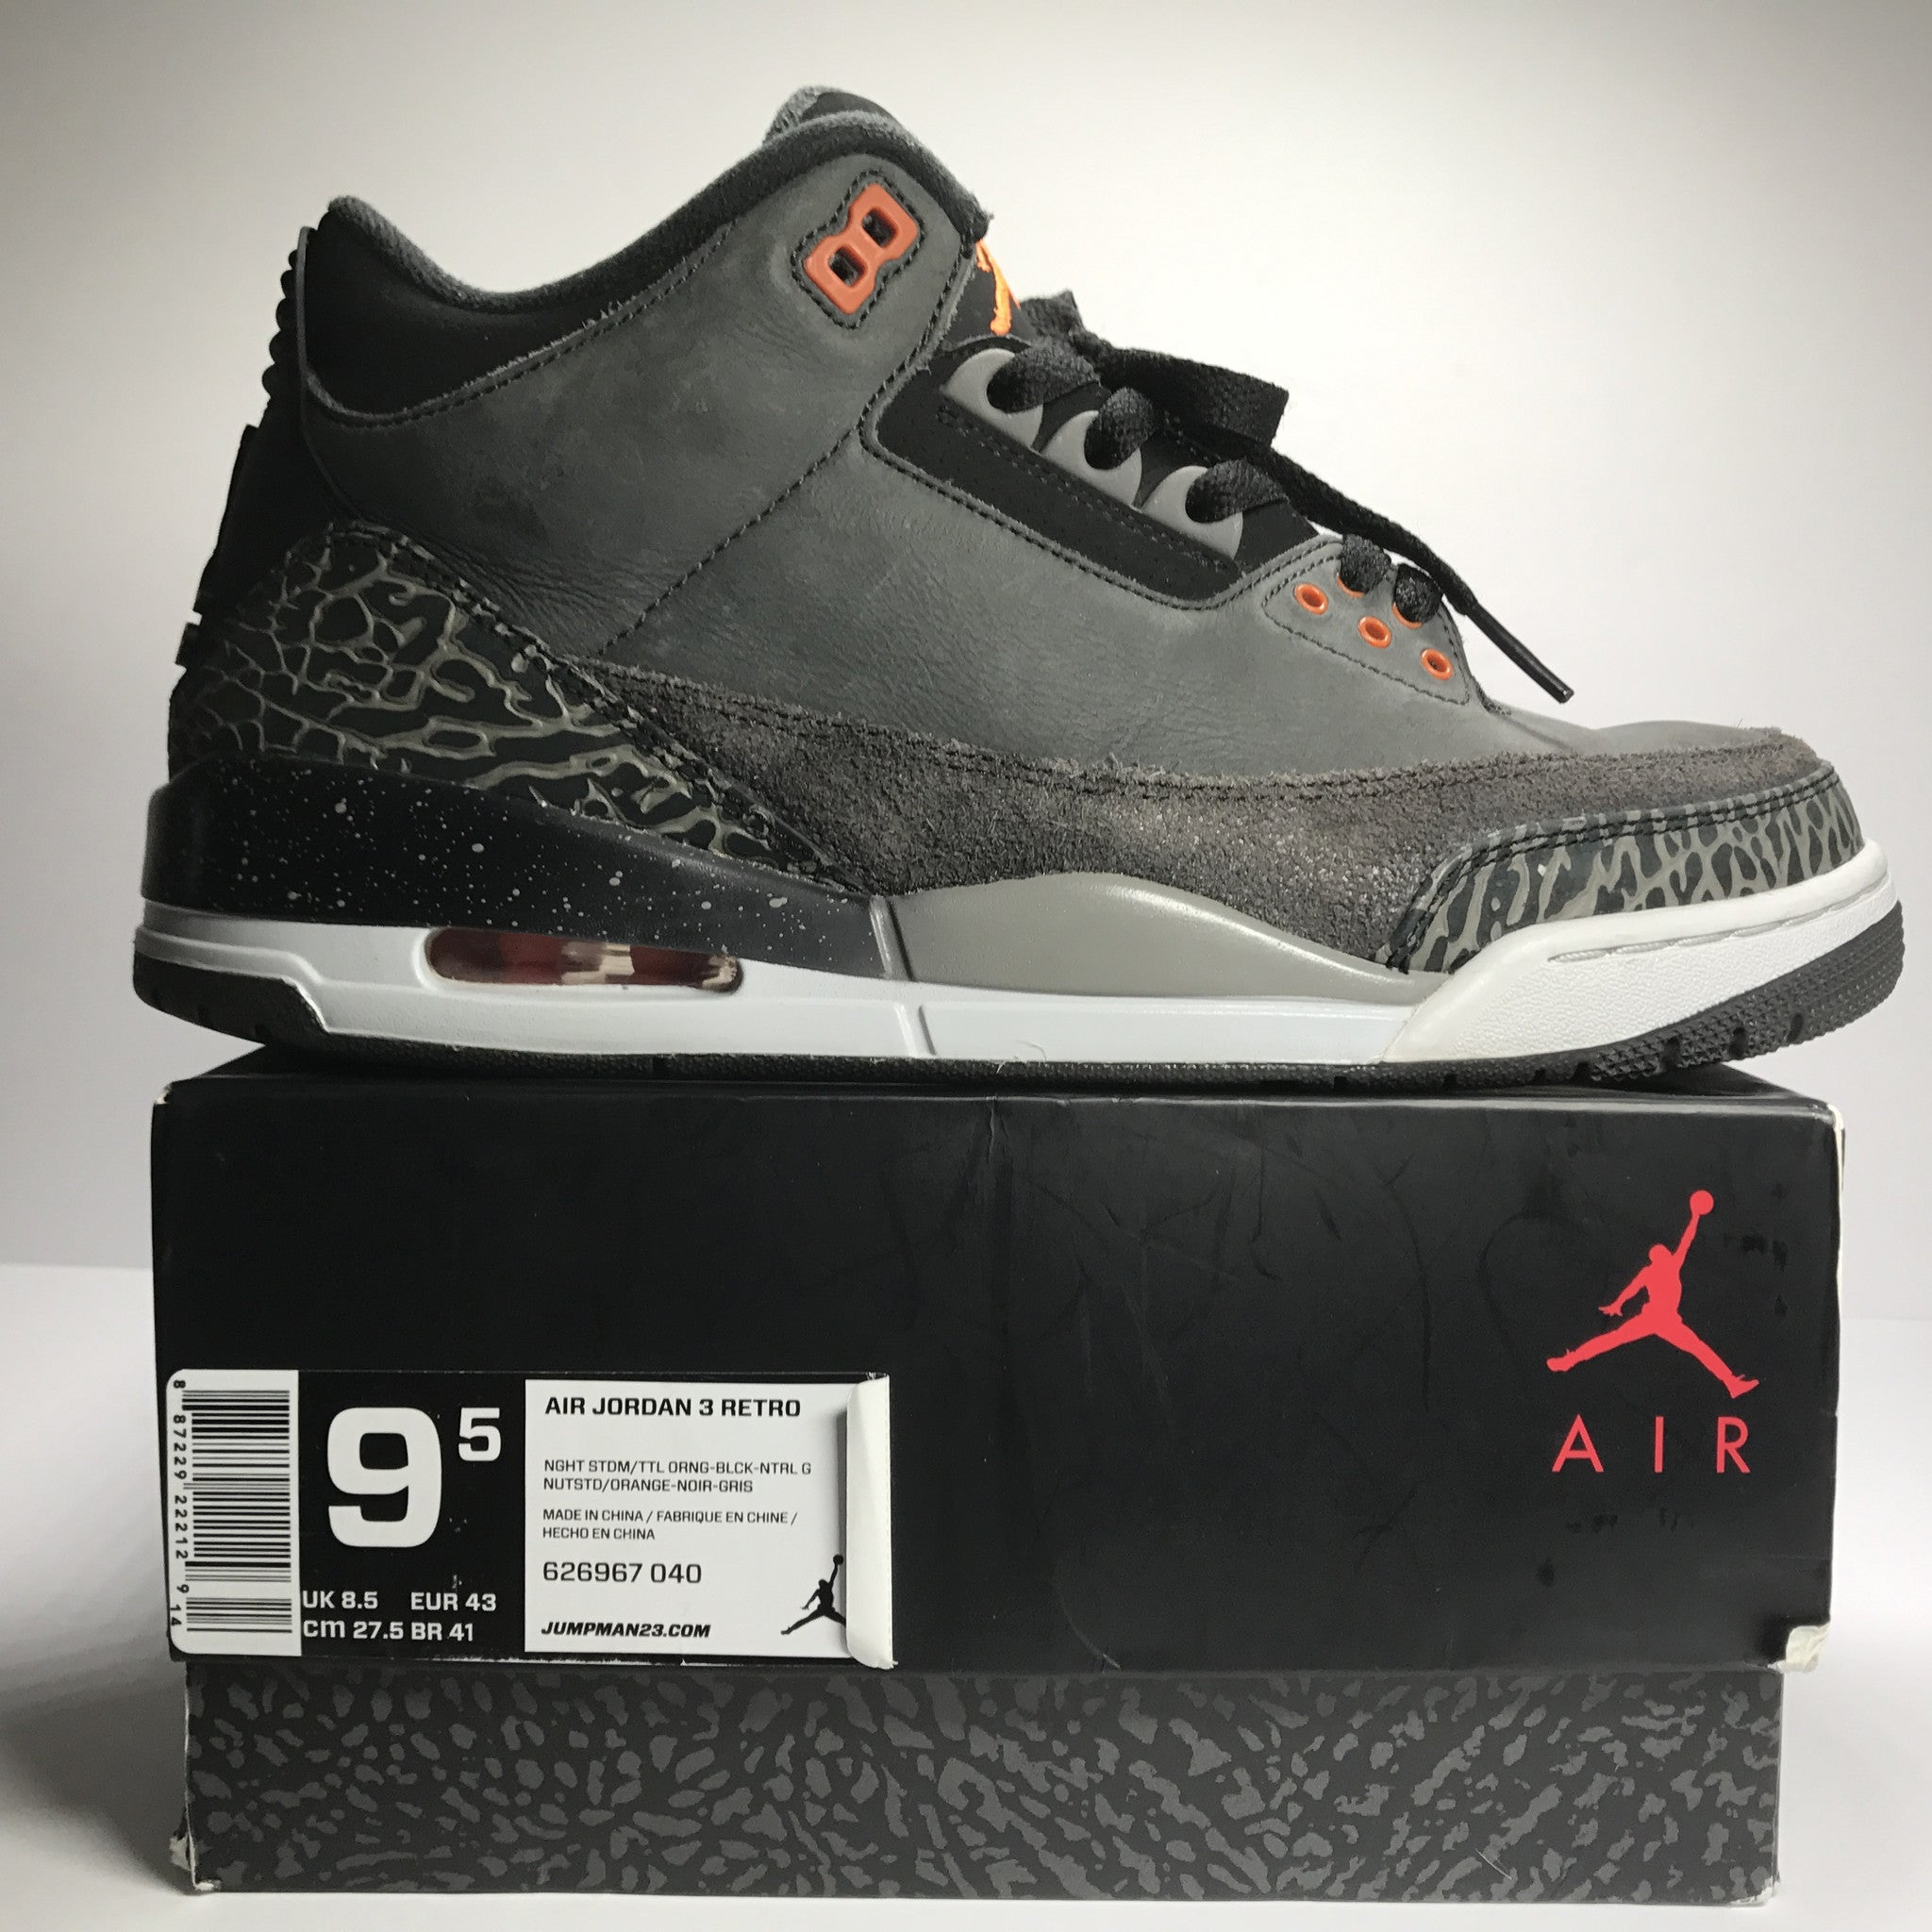 Nike Air Jordan 3 III Retro Fear Pack Size 9.5